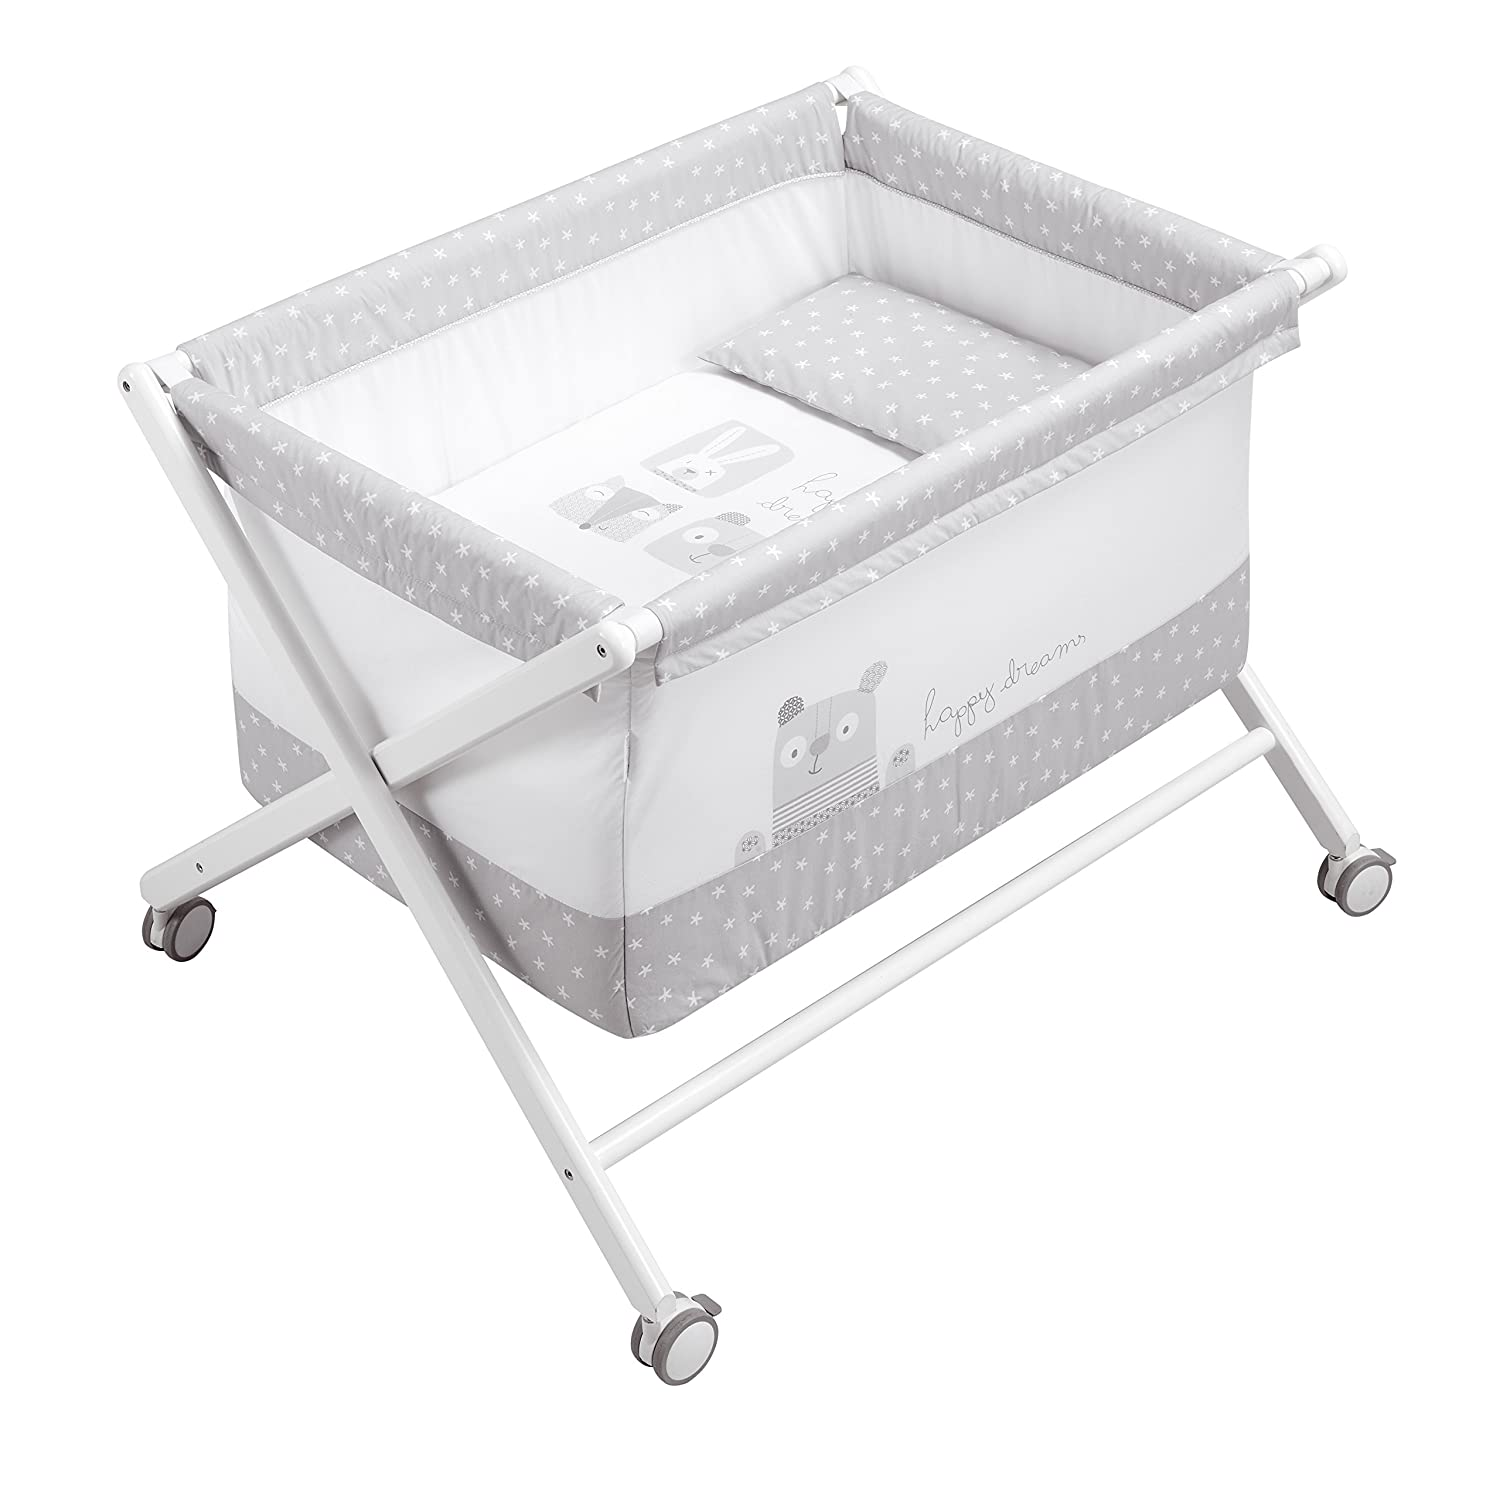 Petit Praia Bobo Crossed Wooden Bassinet (50 x 80 x 72 cm, White) E531 16600